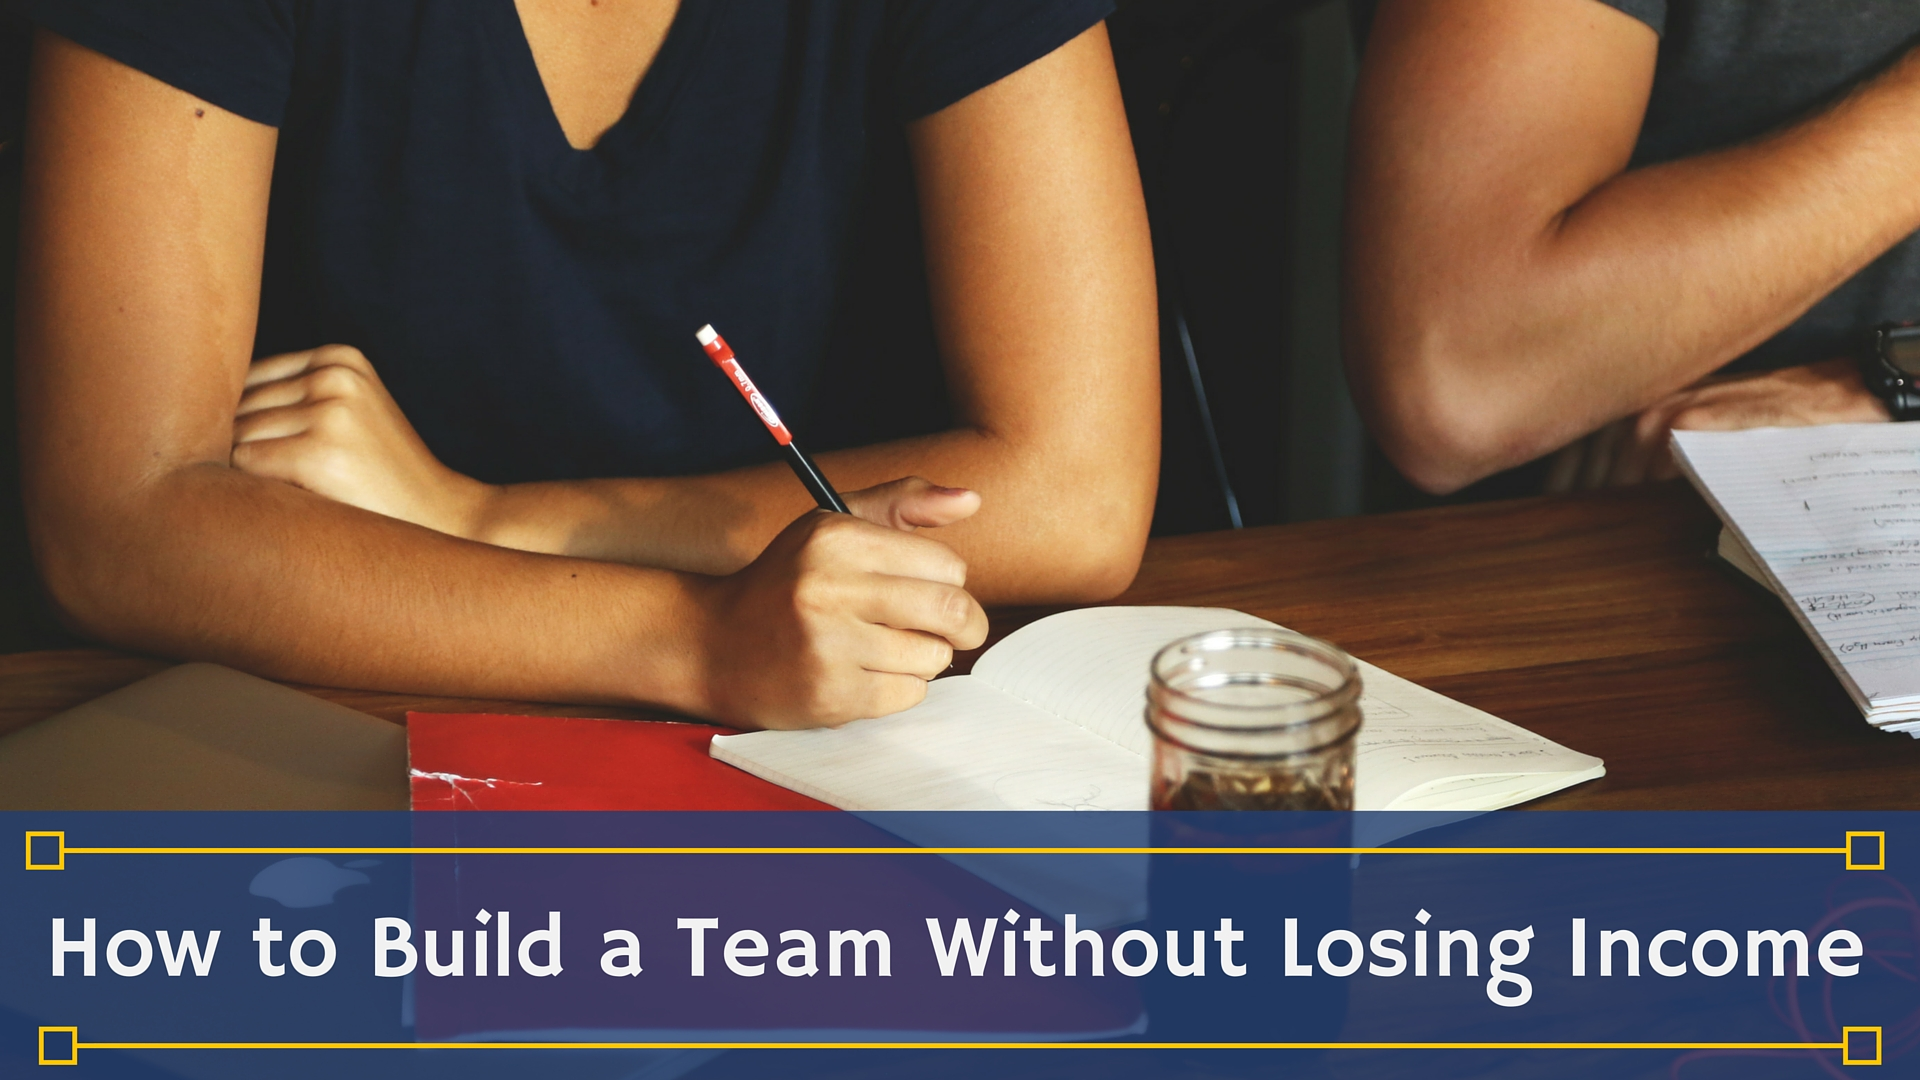 How to Build a Team Without Losing Income